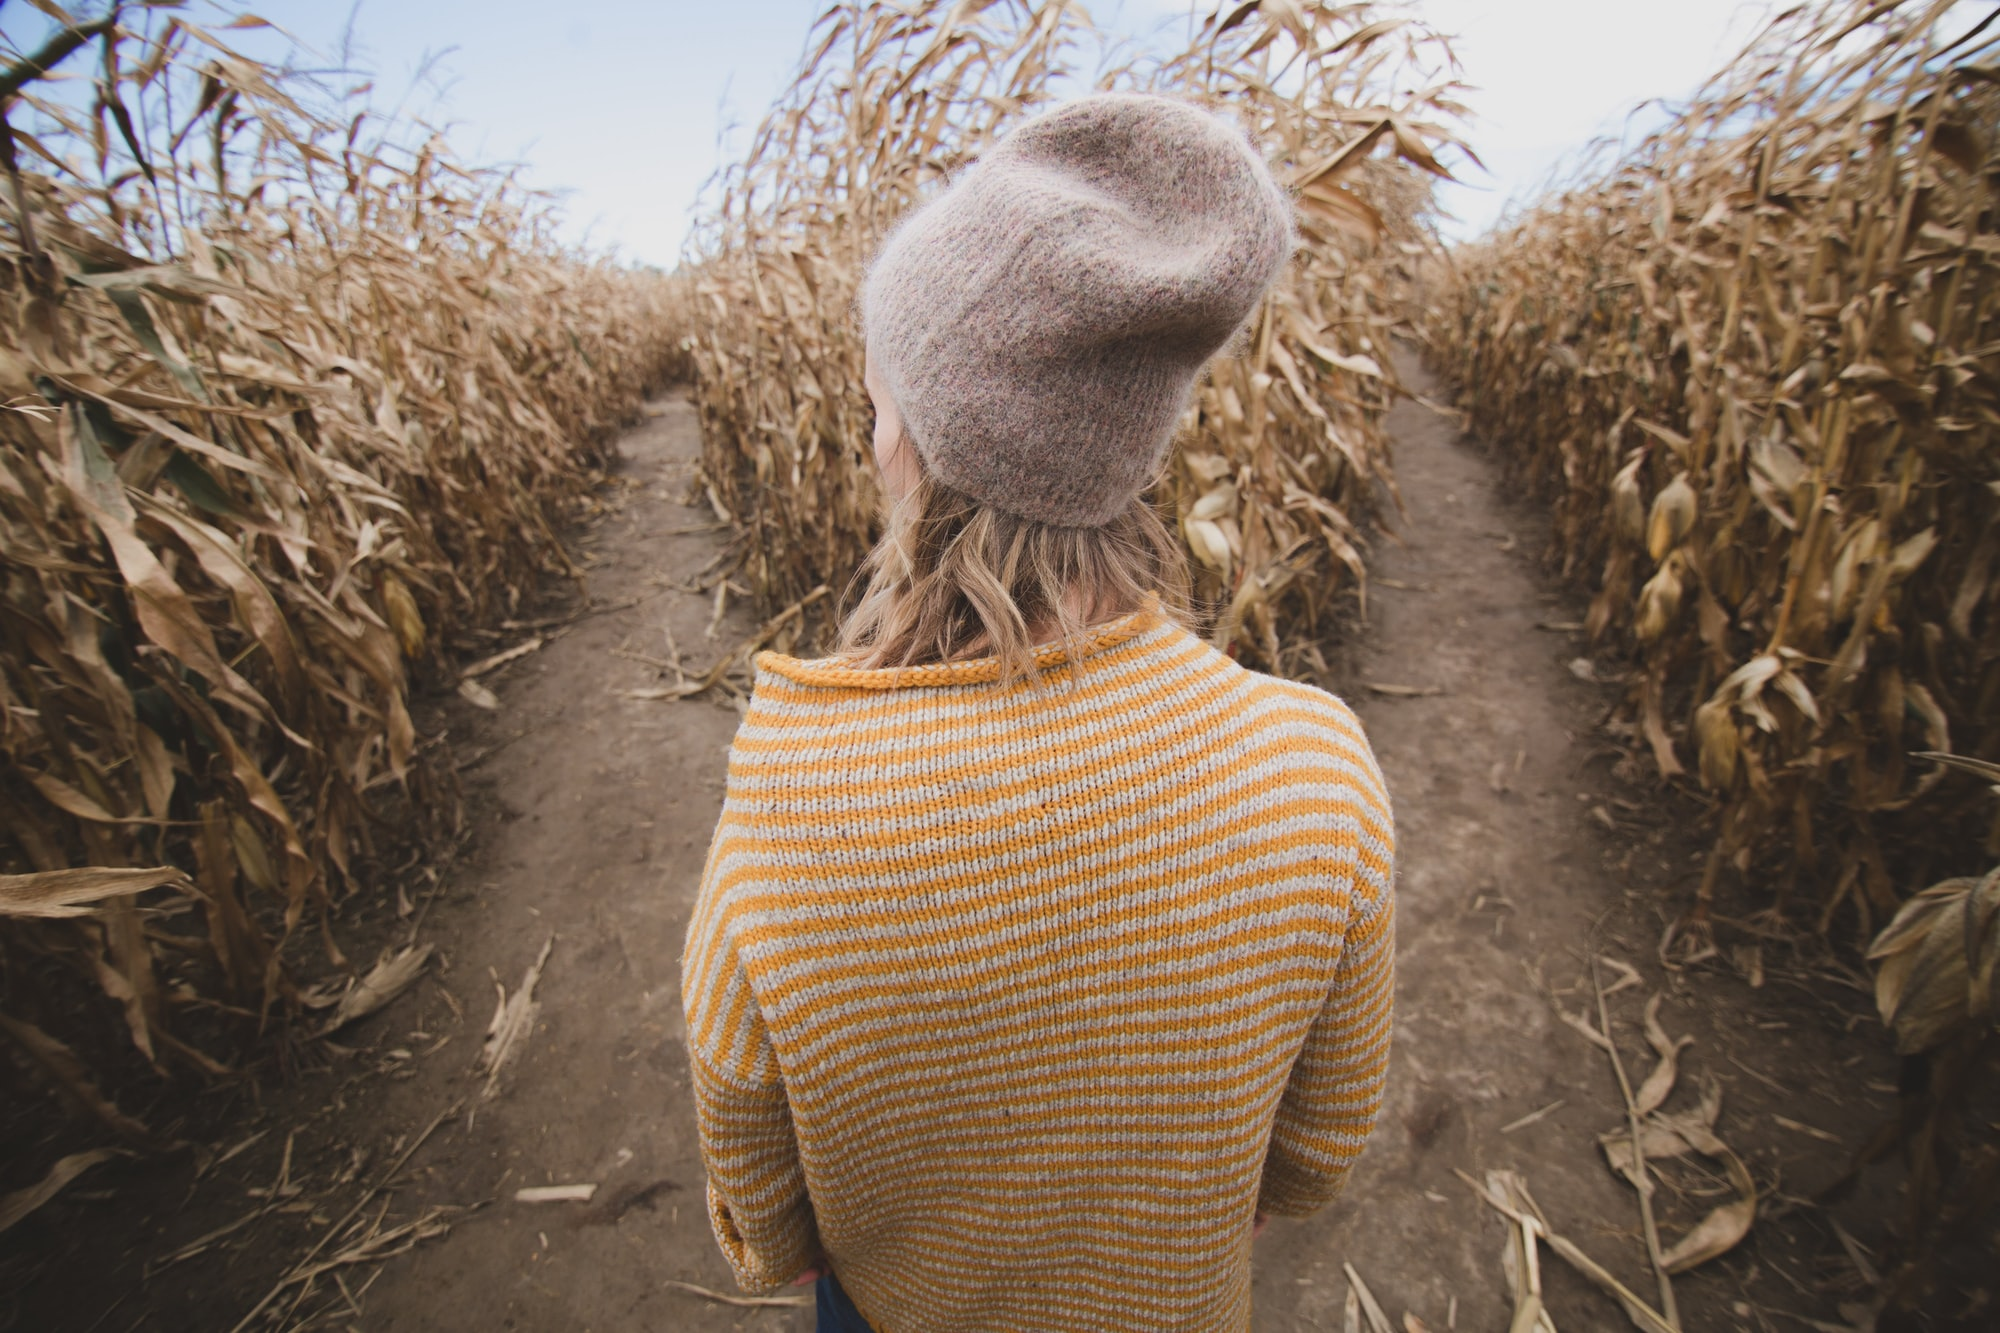 A woman stands in a cornfield, deciding between two directions.